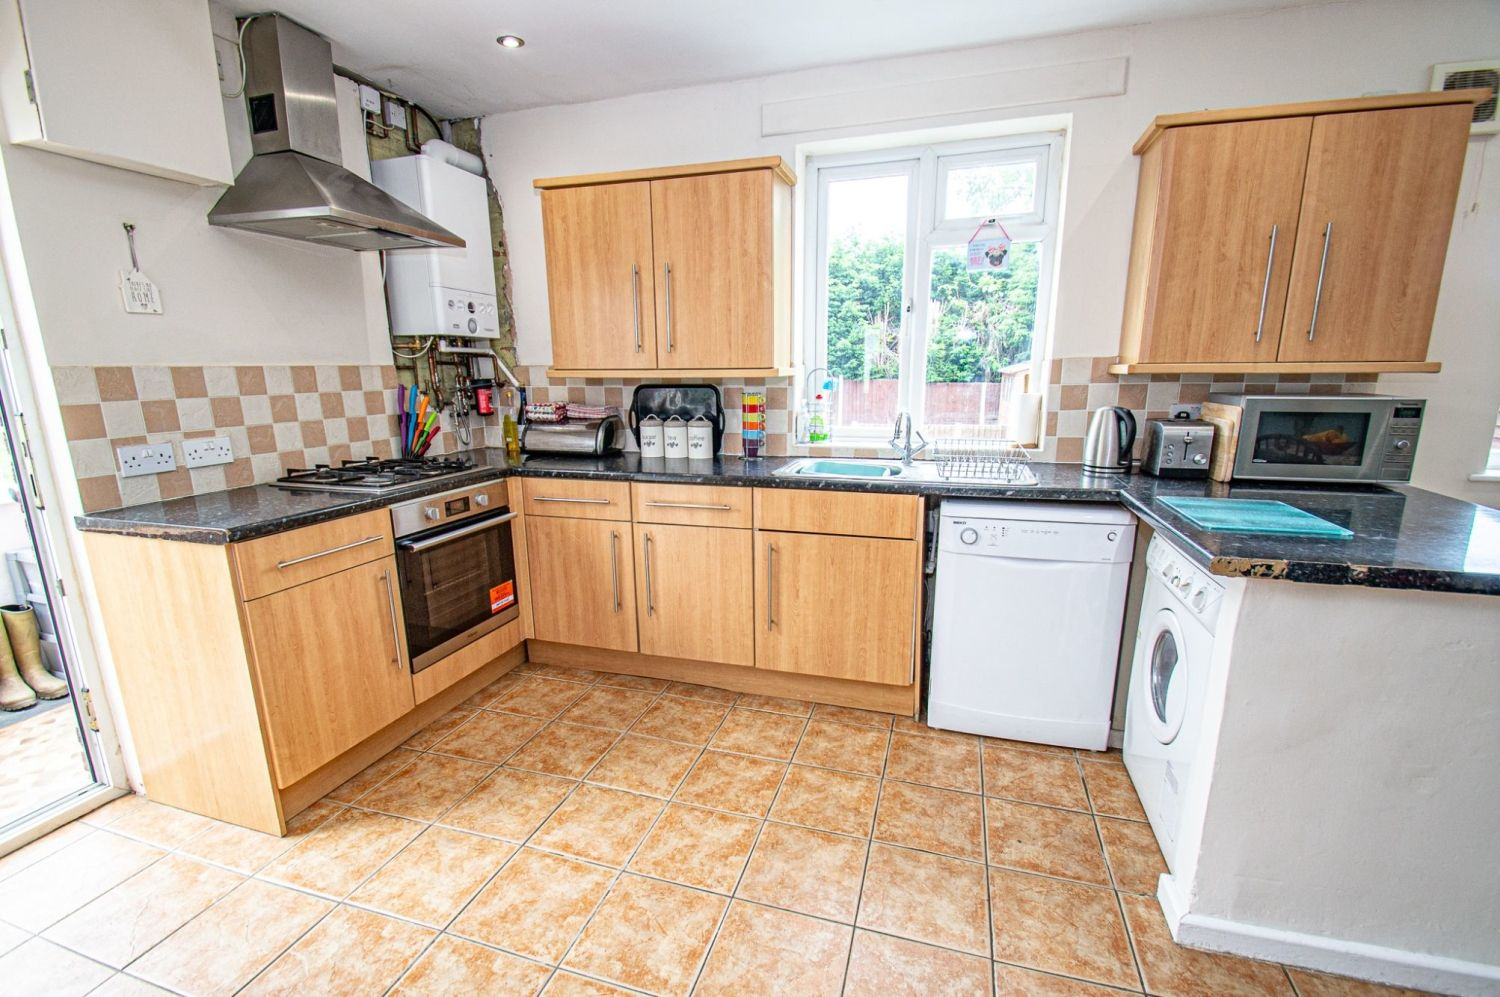 3 bed semi-detached for sale in Gauden Road, Wollescote 3